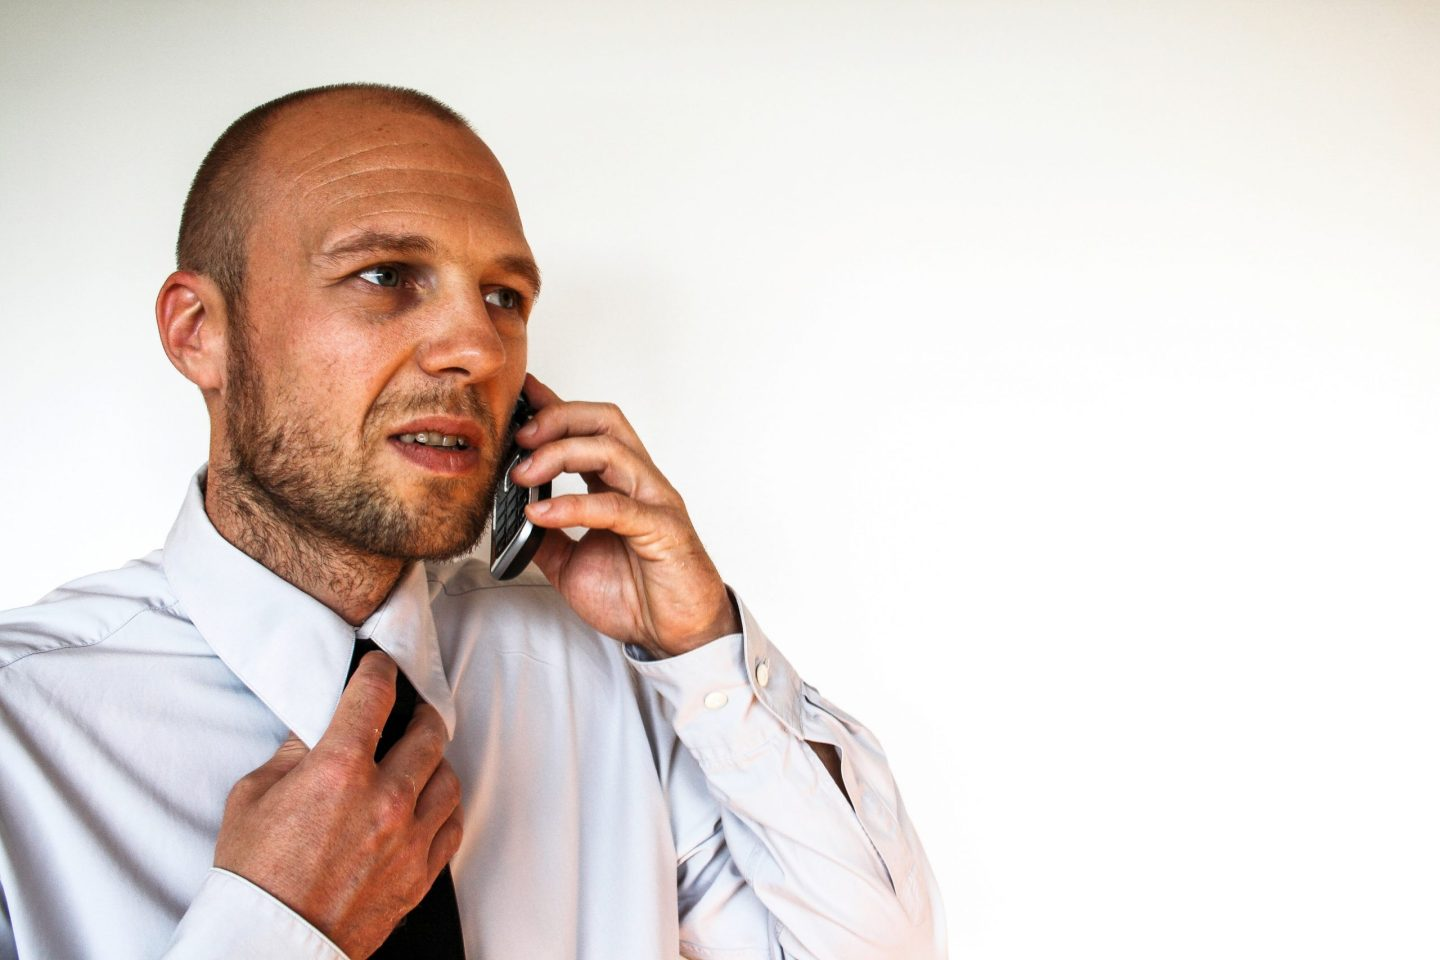 Man feeling anxious during a phone interview